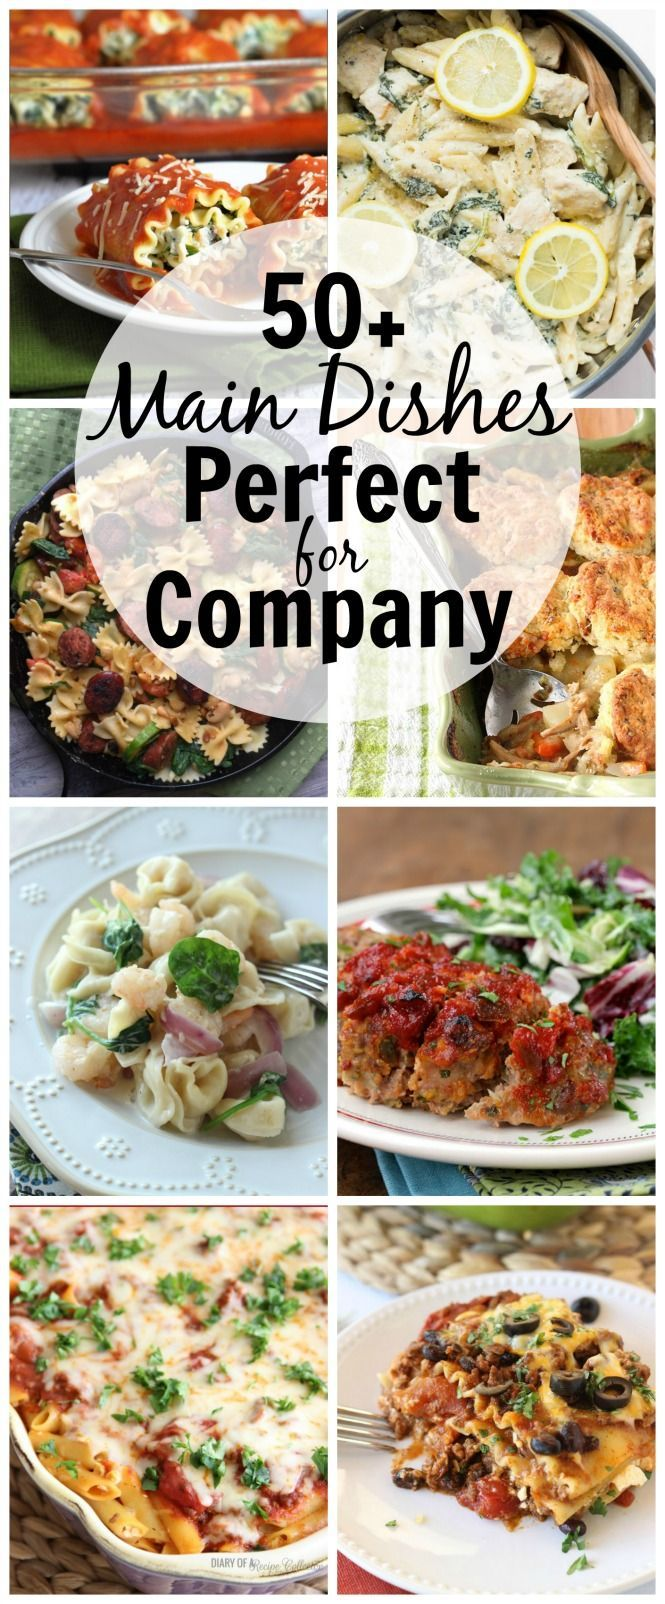 50+ Main Dishes Perfect for Company - Looking for ideas to feed everyone when company's coming? Check out this list of some great dishes sure to please!